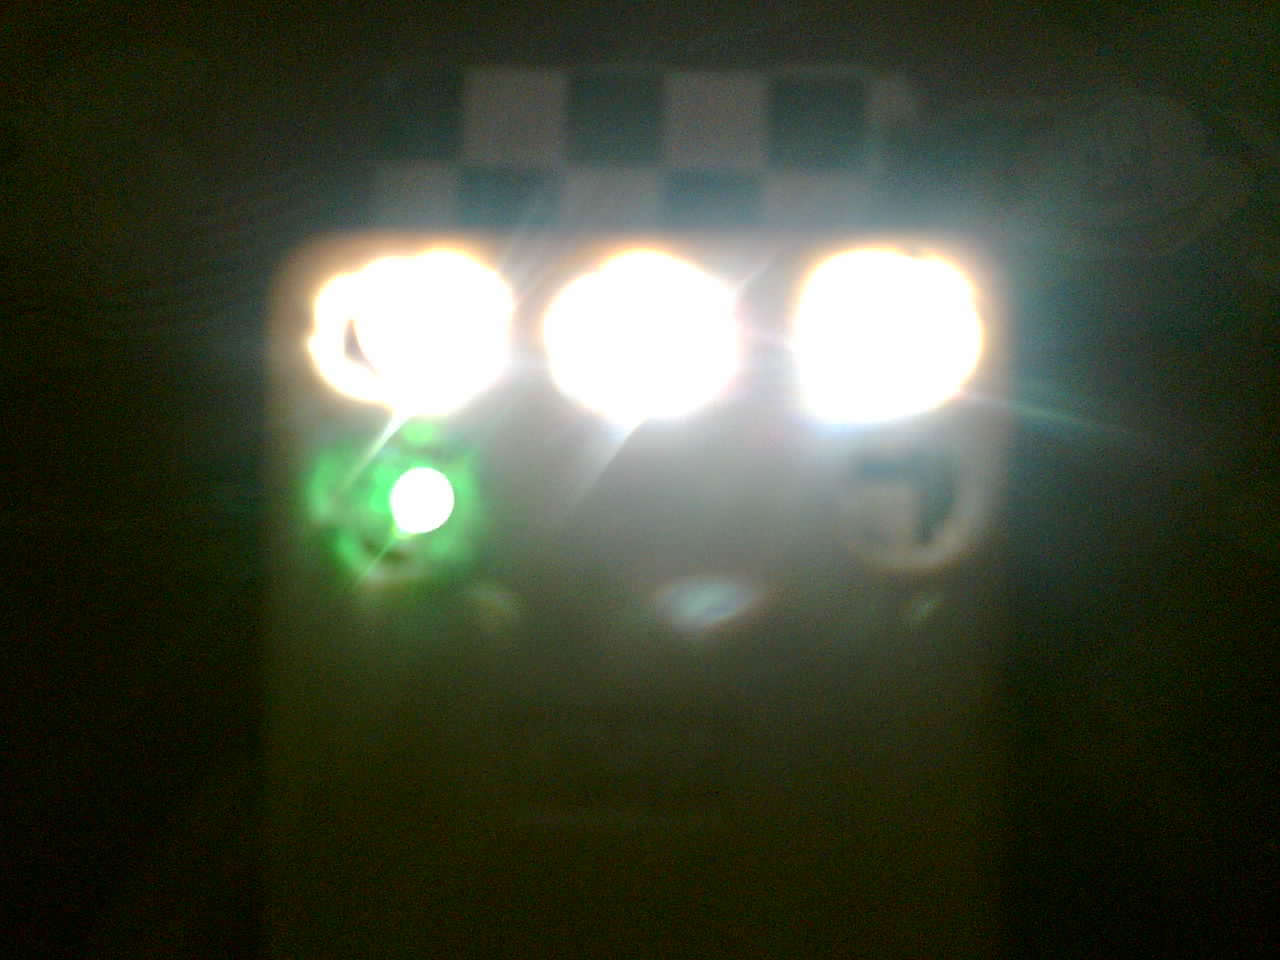 Lampu senter led darurat.jpg